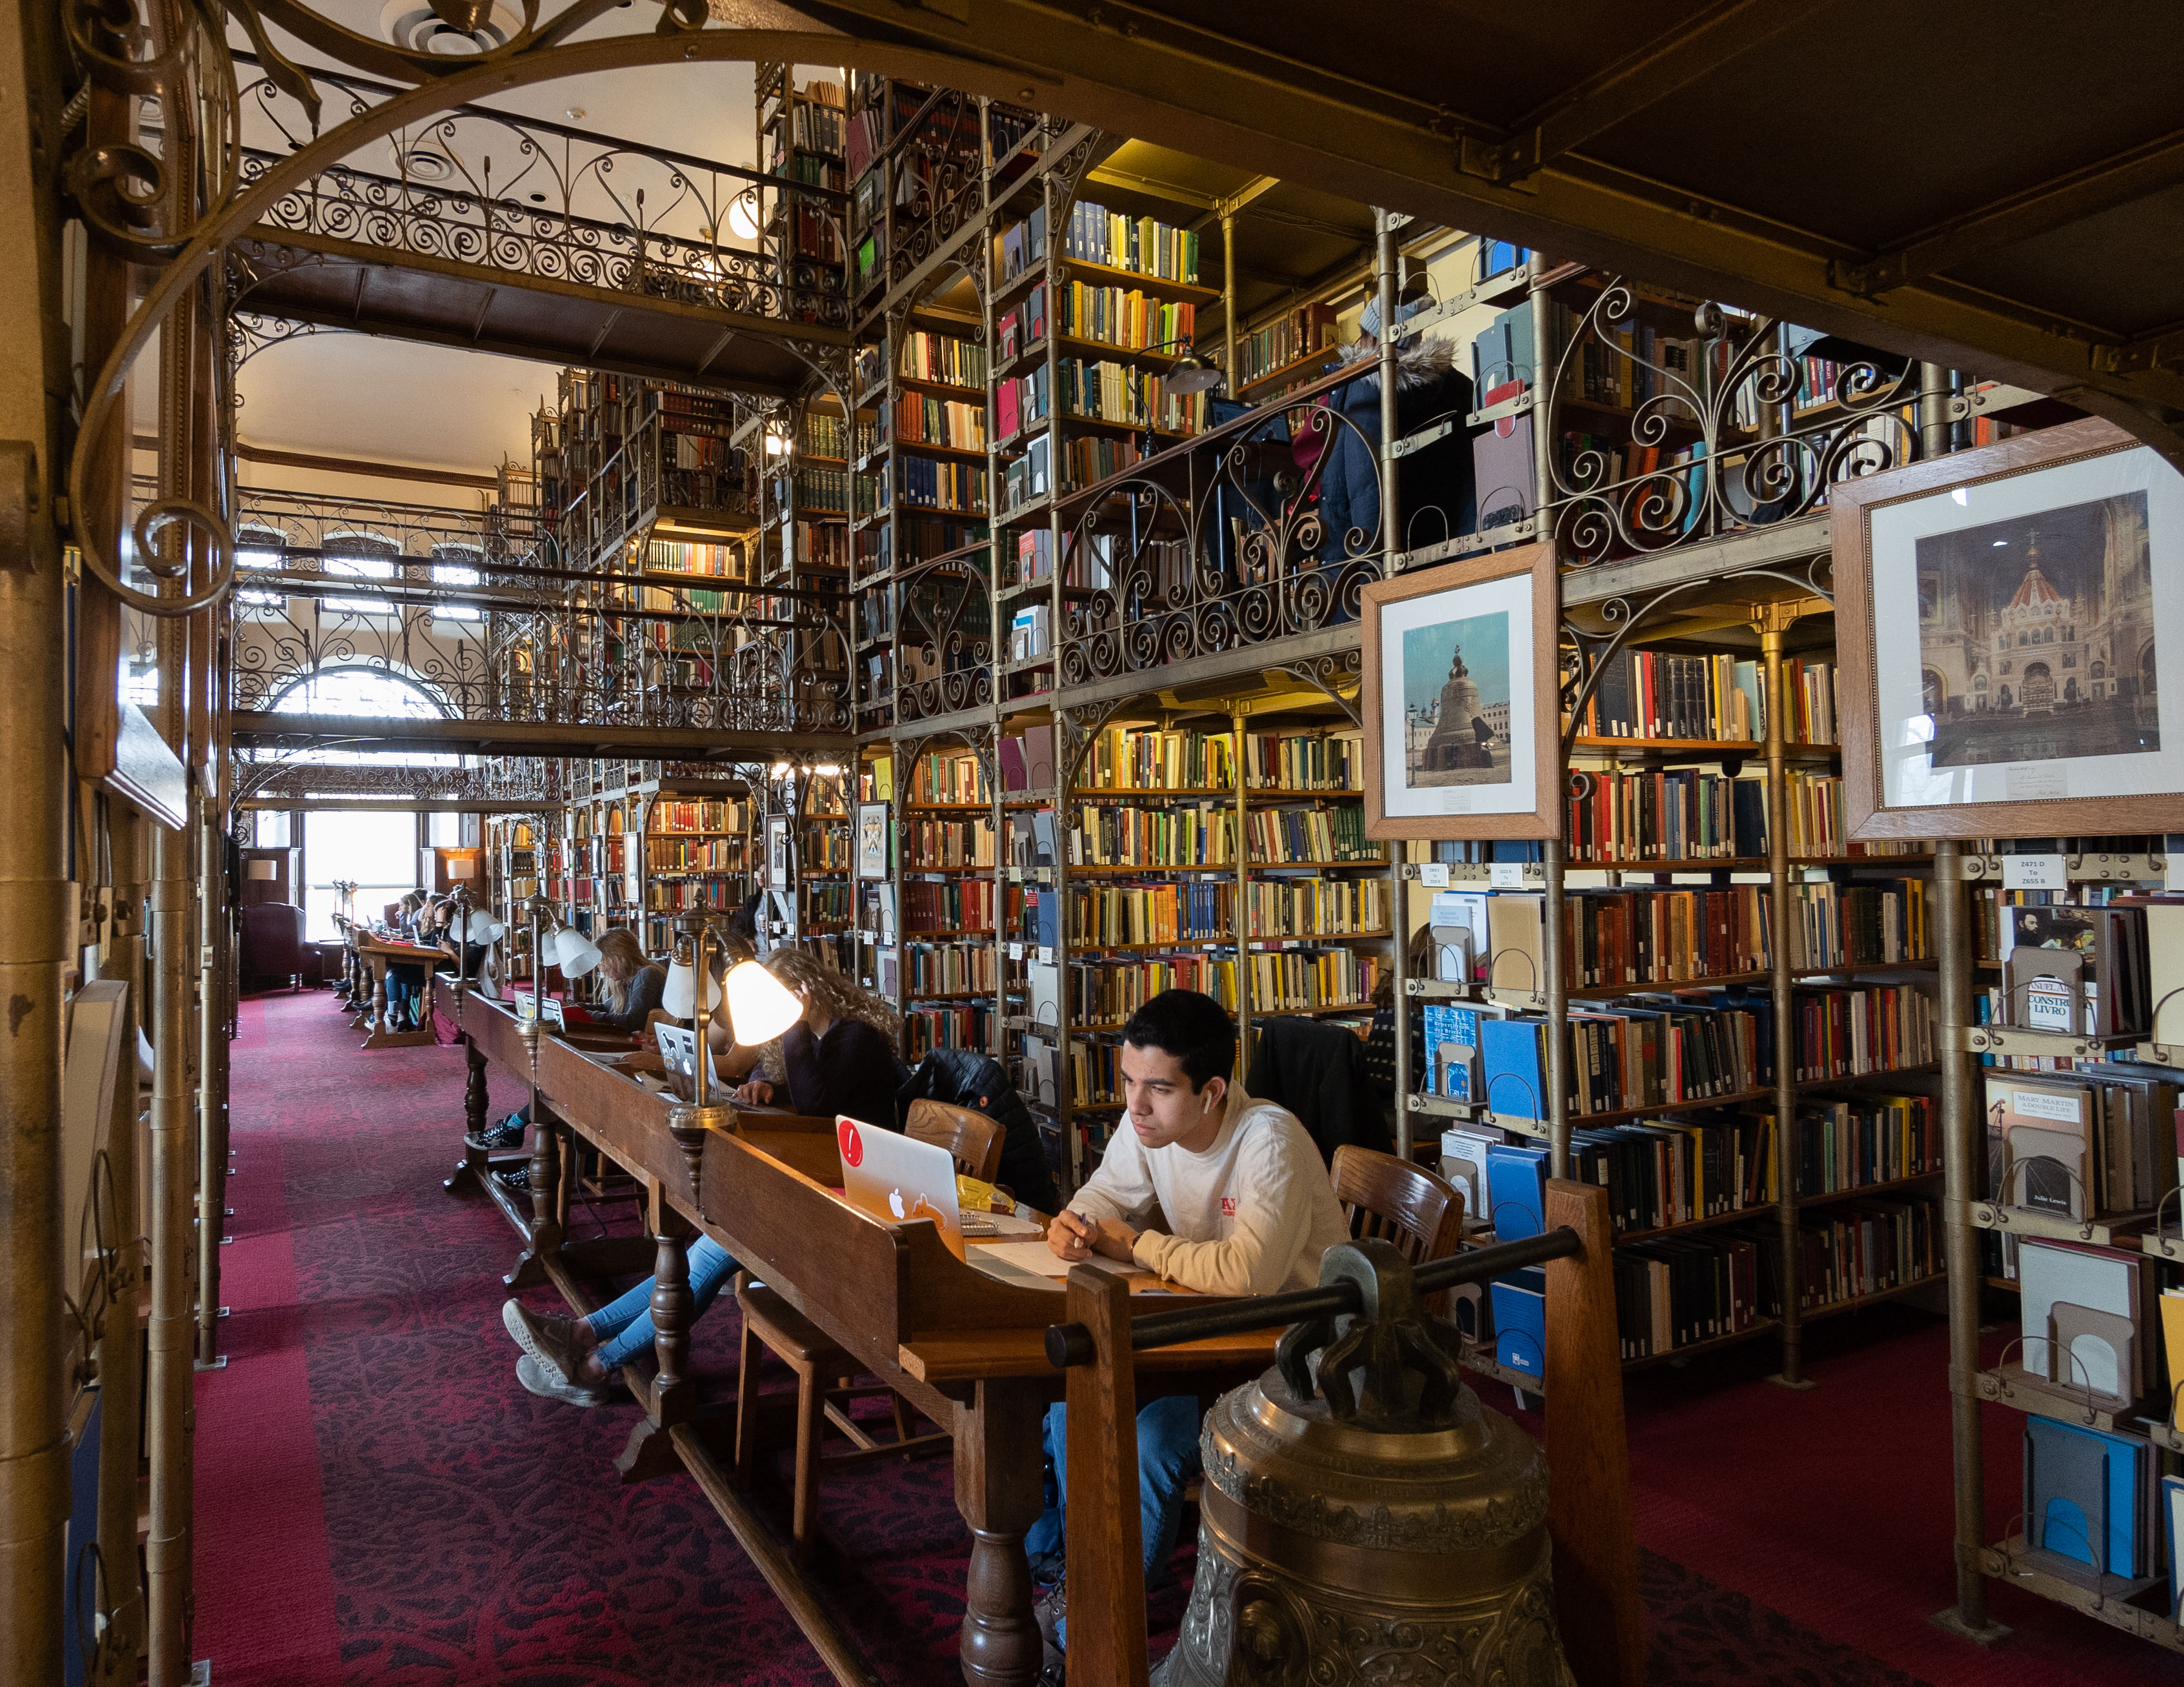 A Silver Lining Cornell S Library Transformation And Hard Work The Cornell Daily Sun